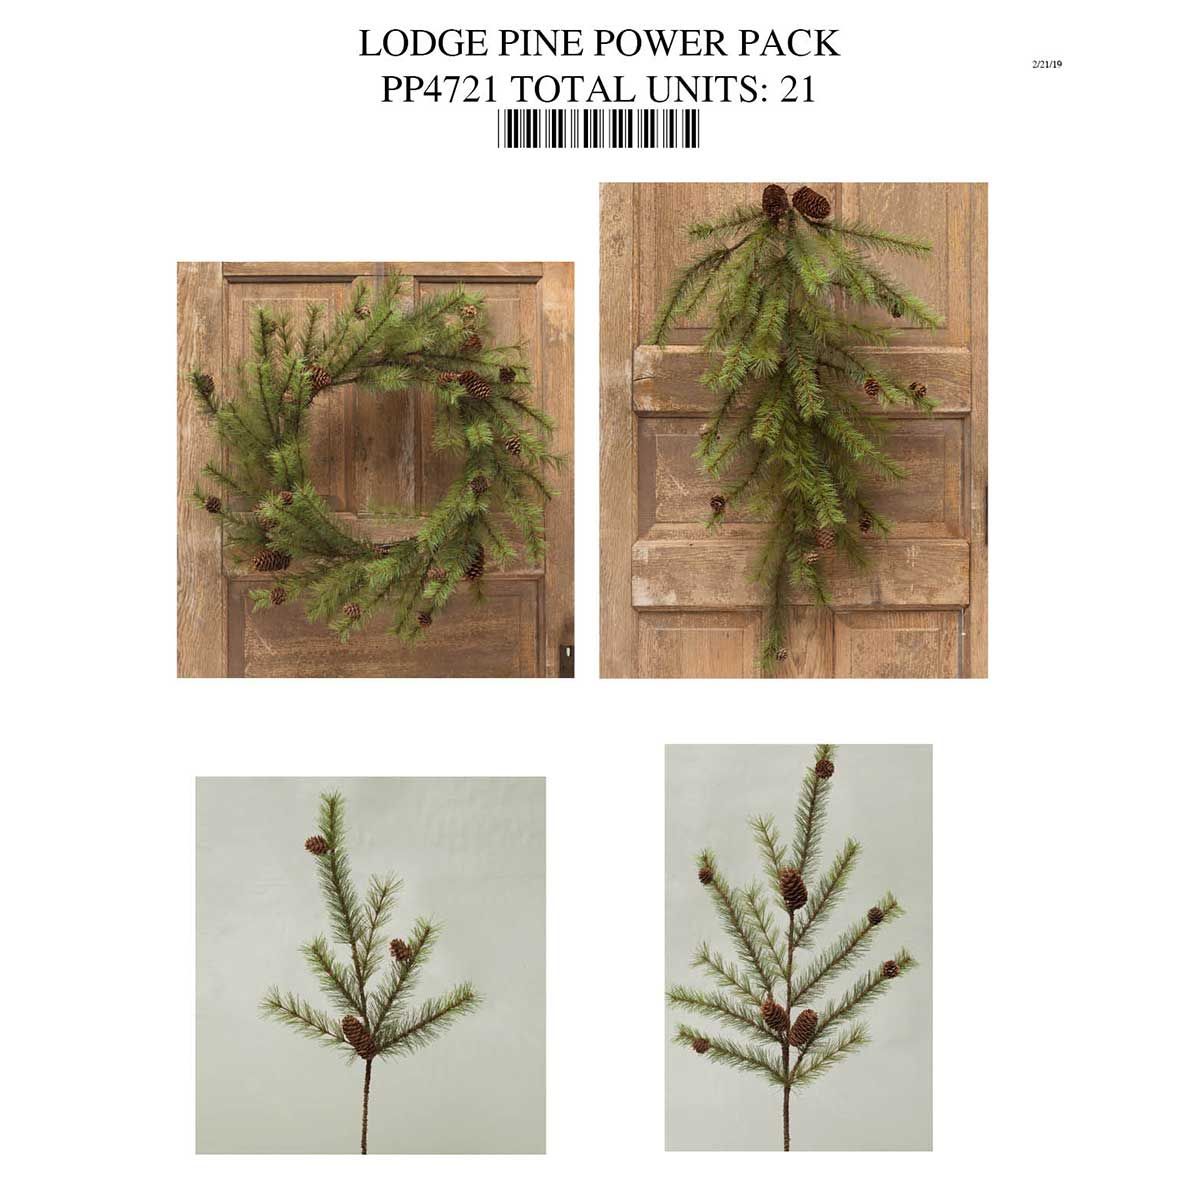 LODGE PINE WITH CONES POWER PACK